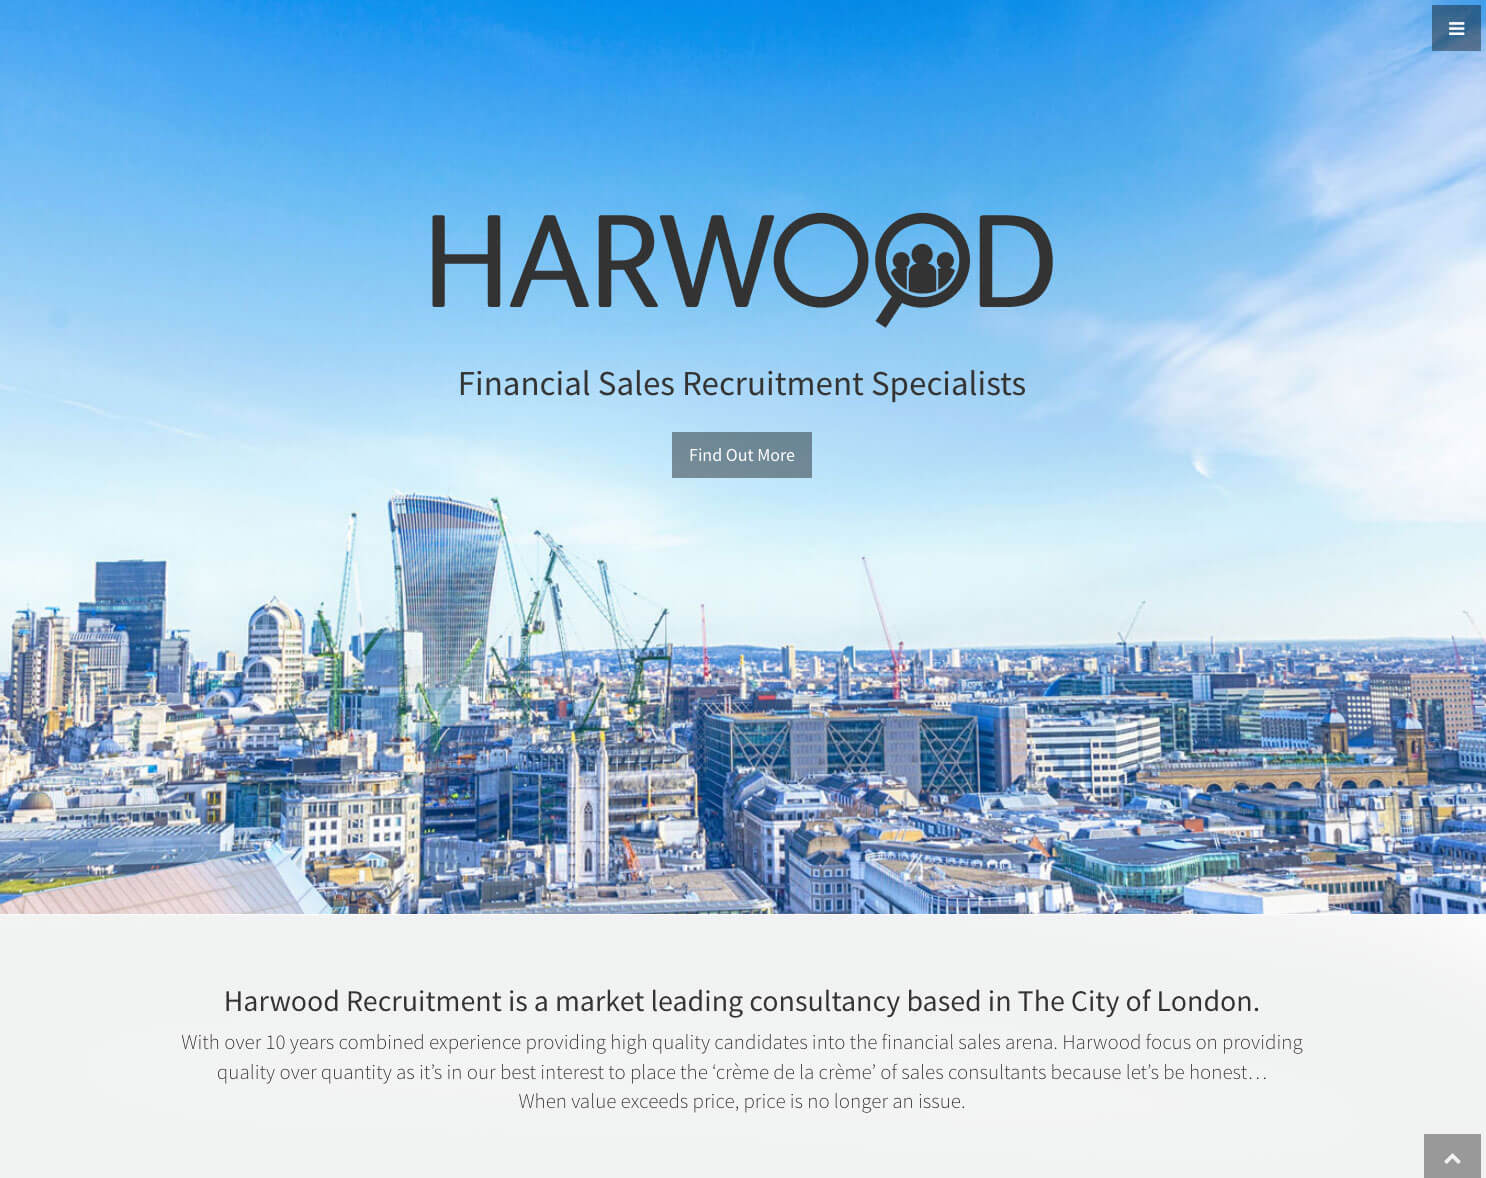 Harwood Recruitment employs new responsive microsite